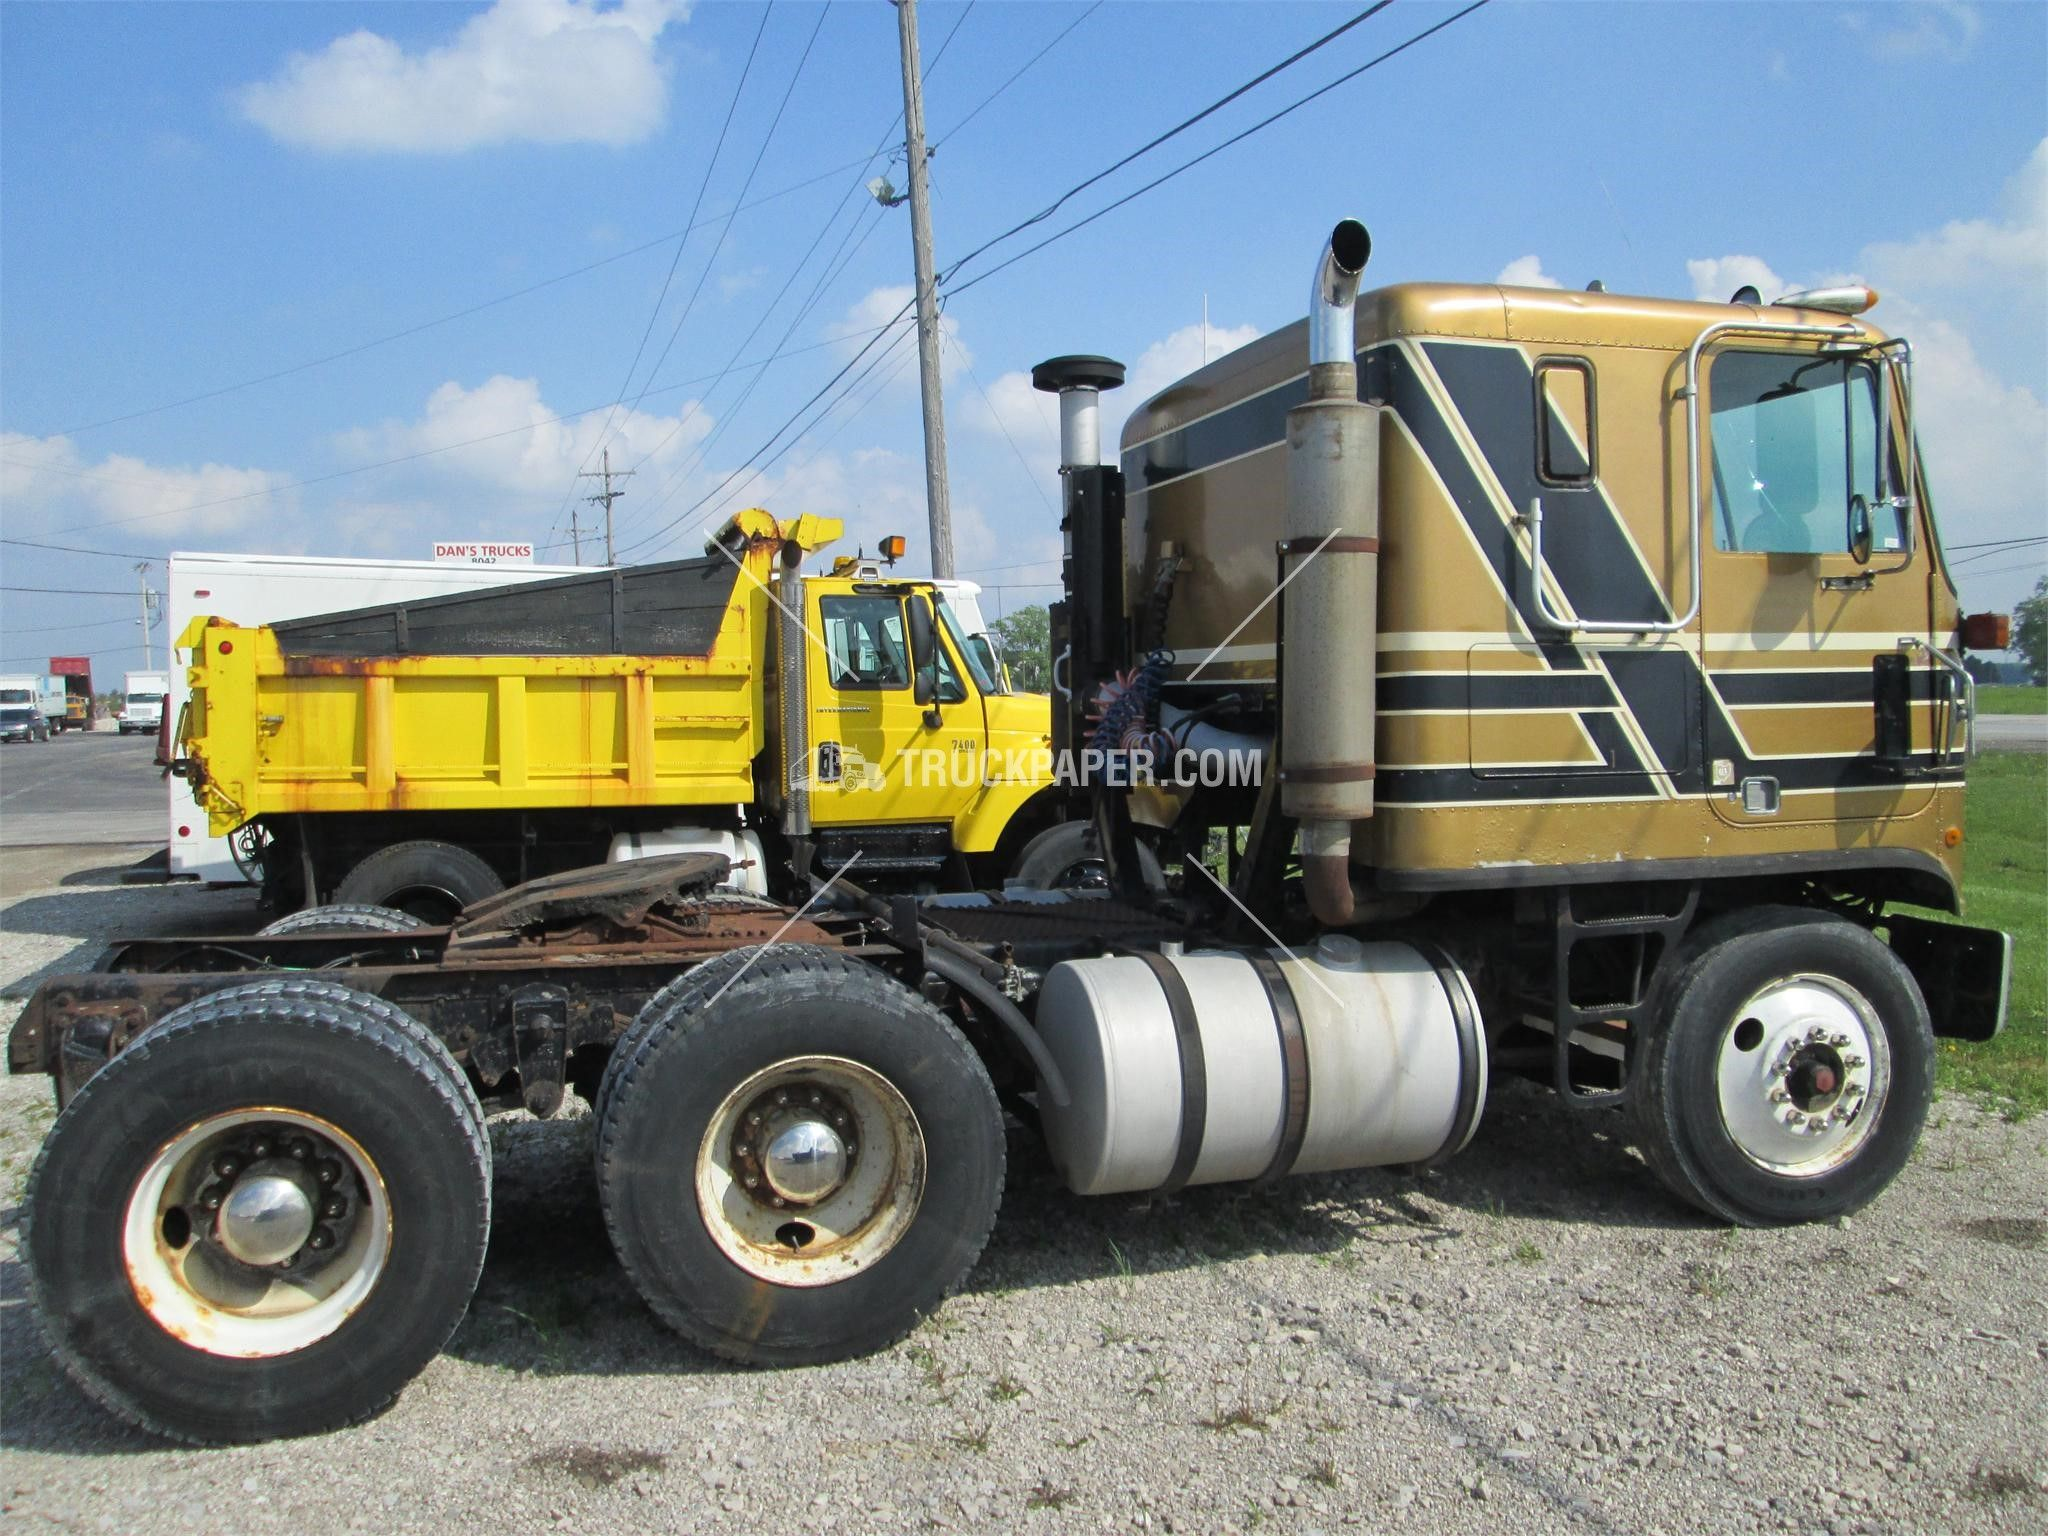 1982 gmc astro heavy duty trucks cabover trucks w sleeper for sale at truckpaper